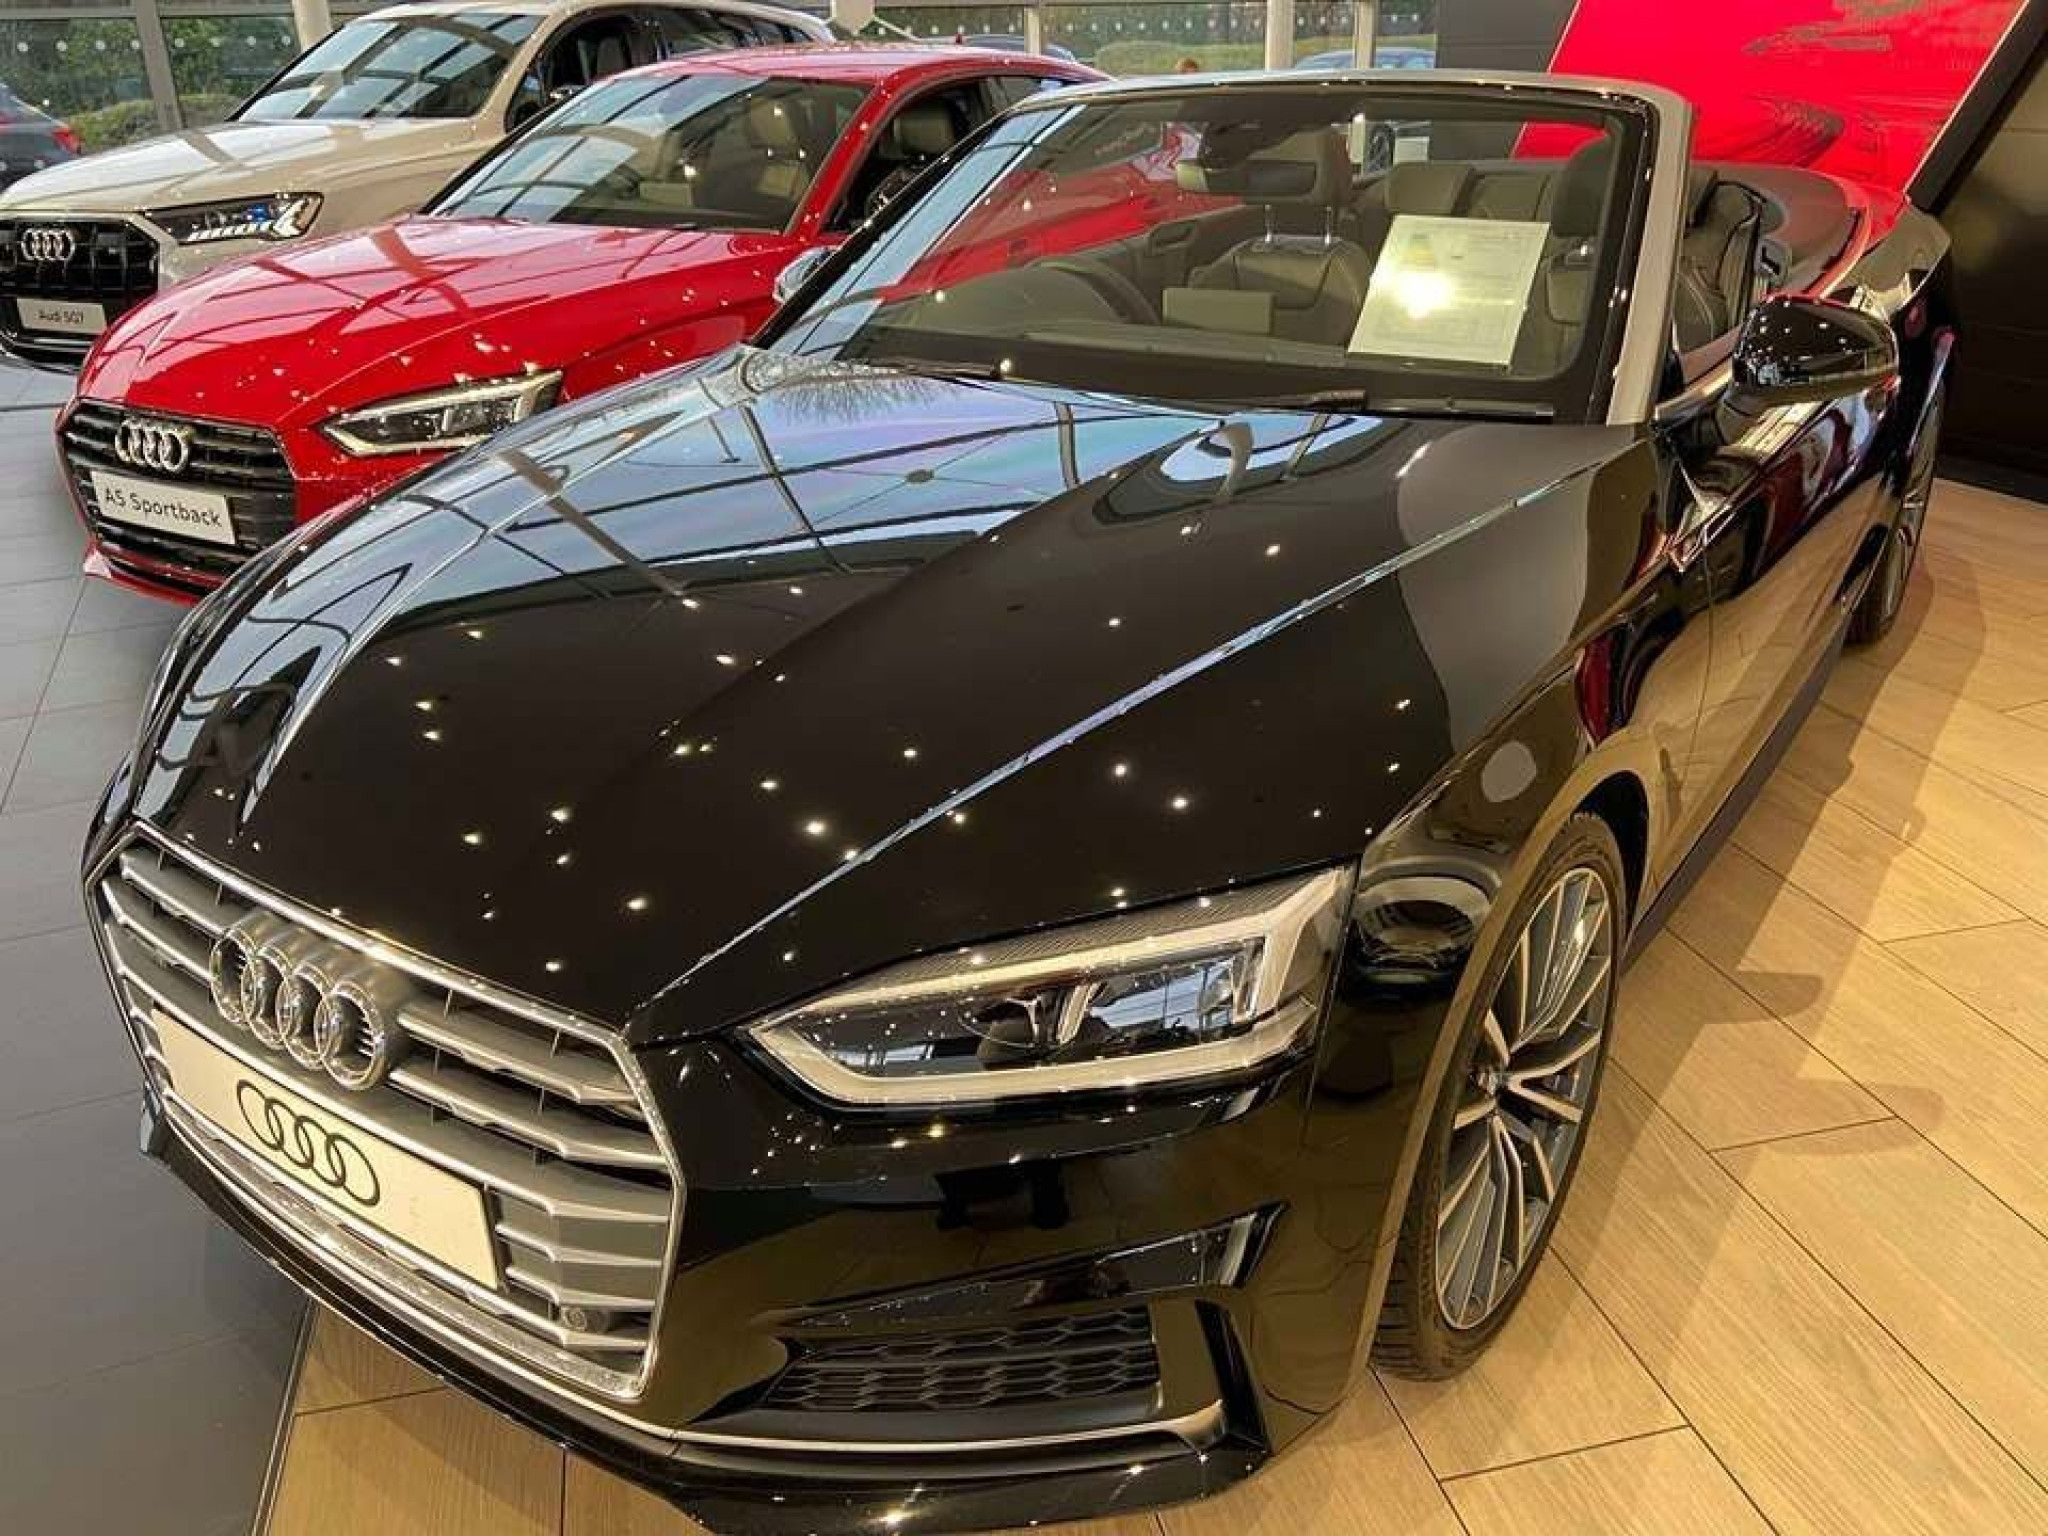 Audi A5 Cabriolet 2 0 Tdi 40 S Line Cabriolet S Tronic Quattro S S 2dr In 2020 Audi A5 A5 Cabriolet Used Audi